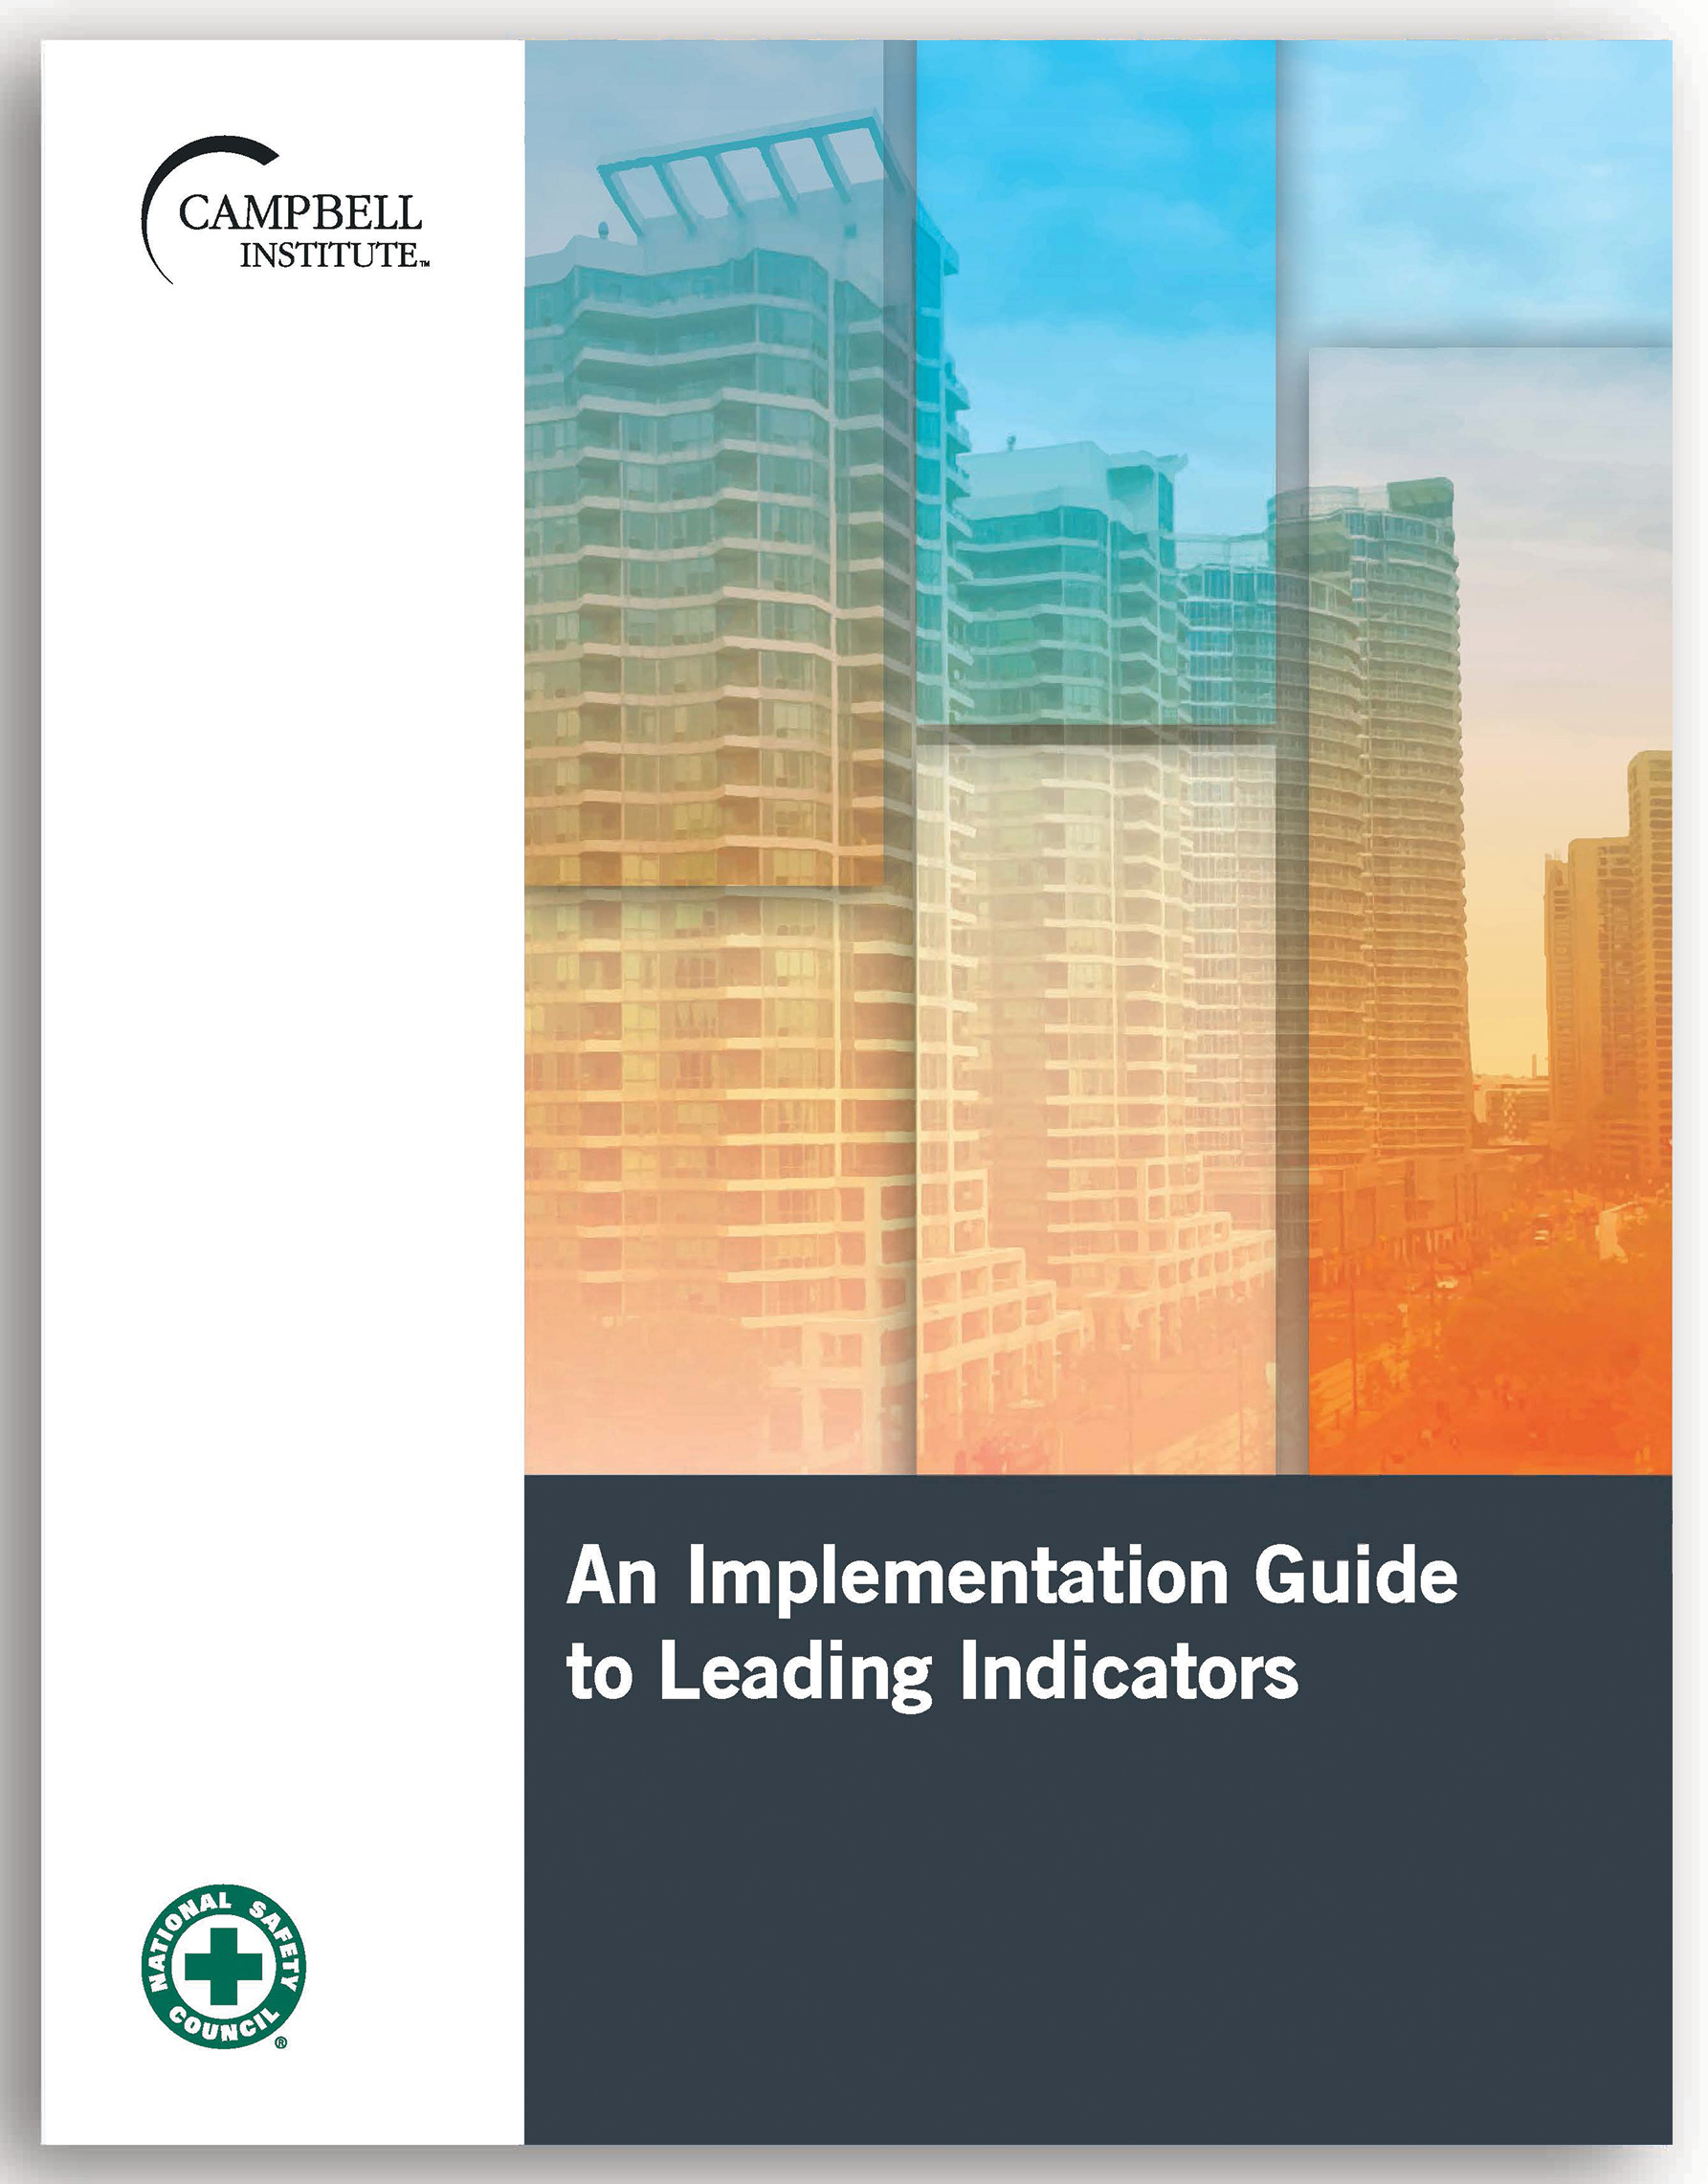 An Implementation Guide to Leading Indicators